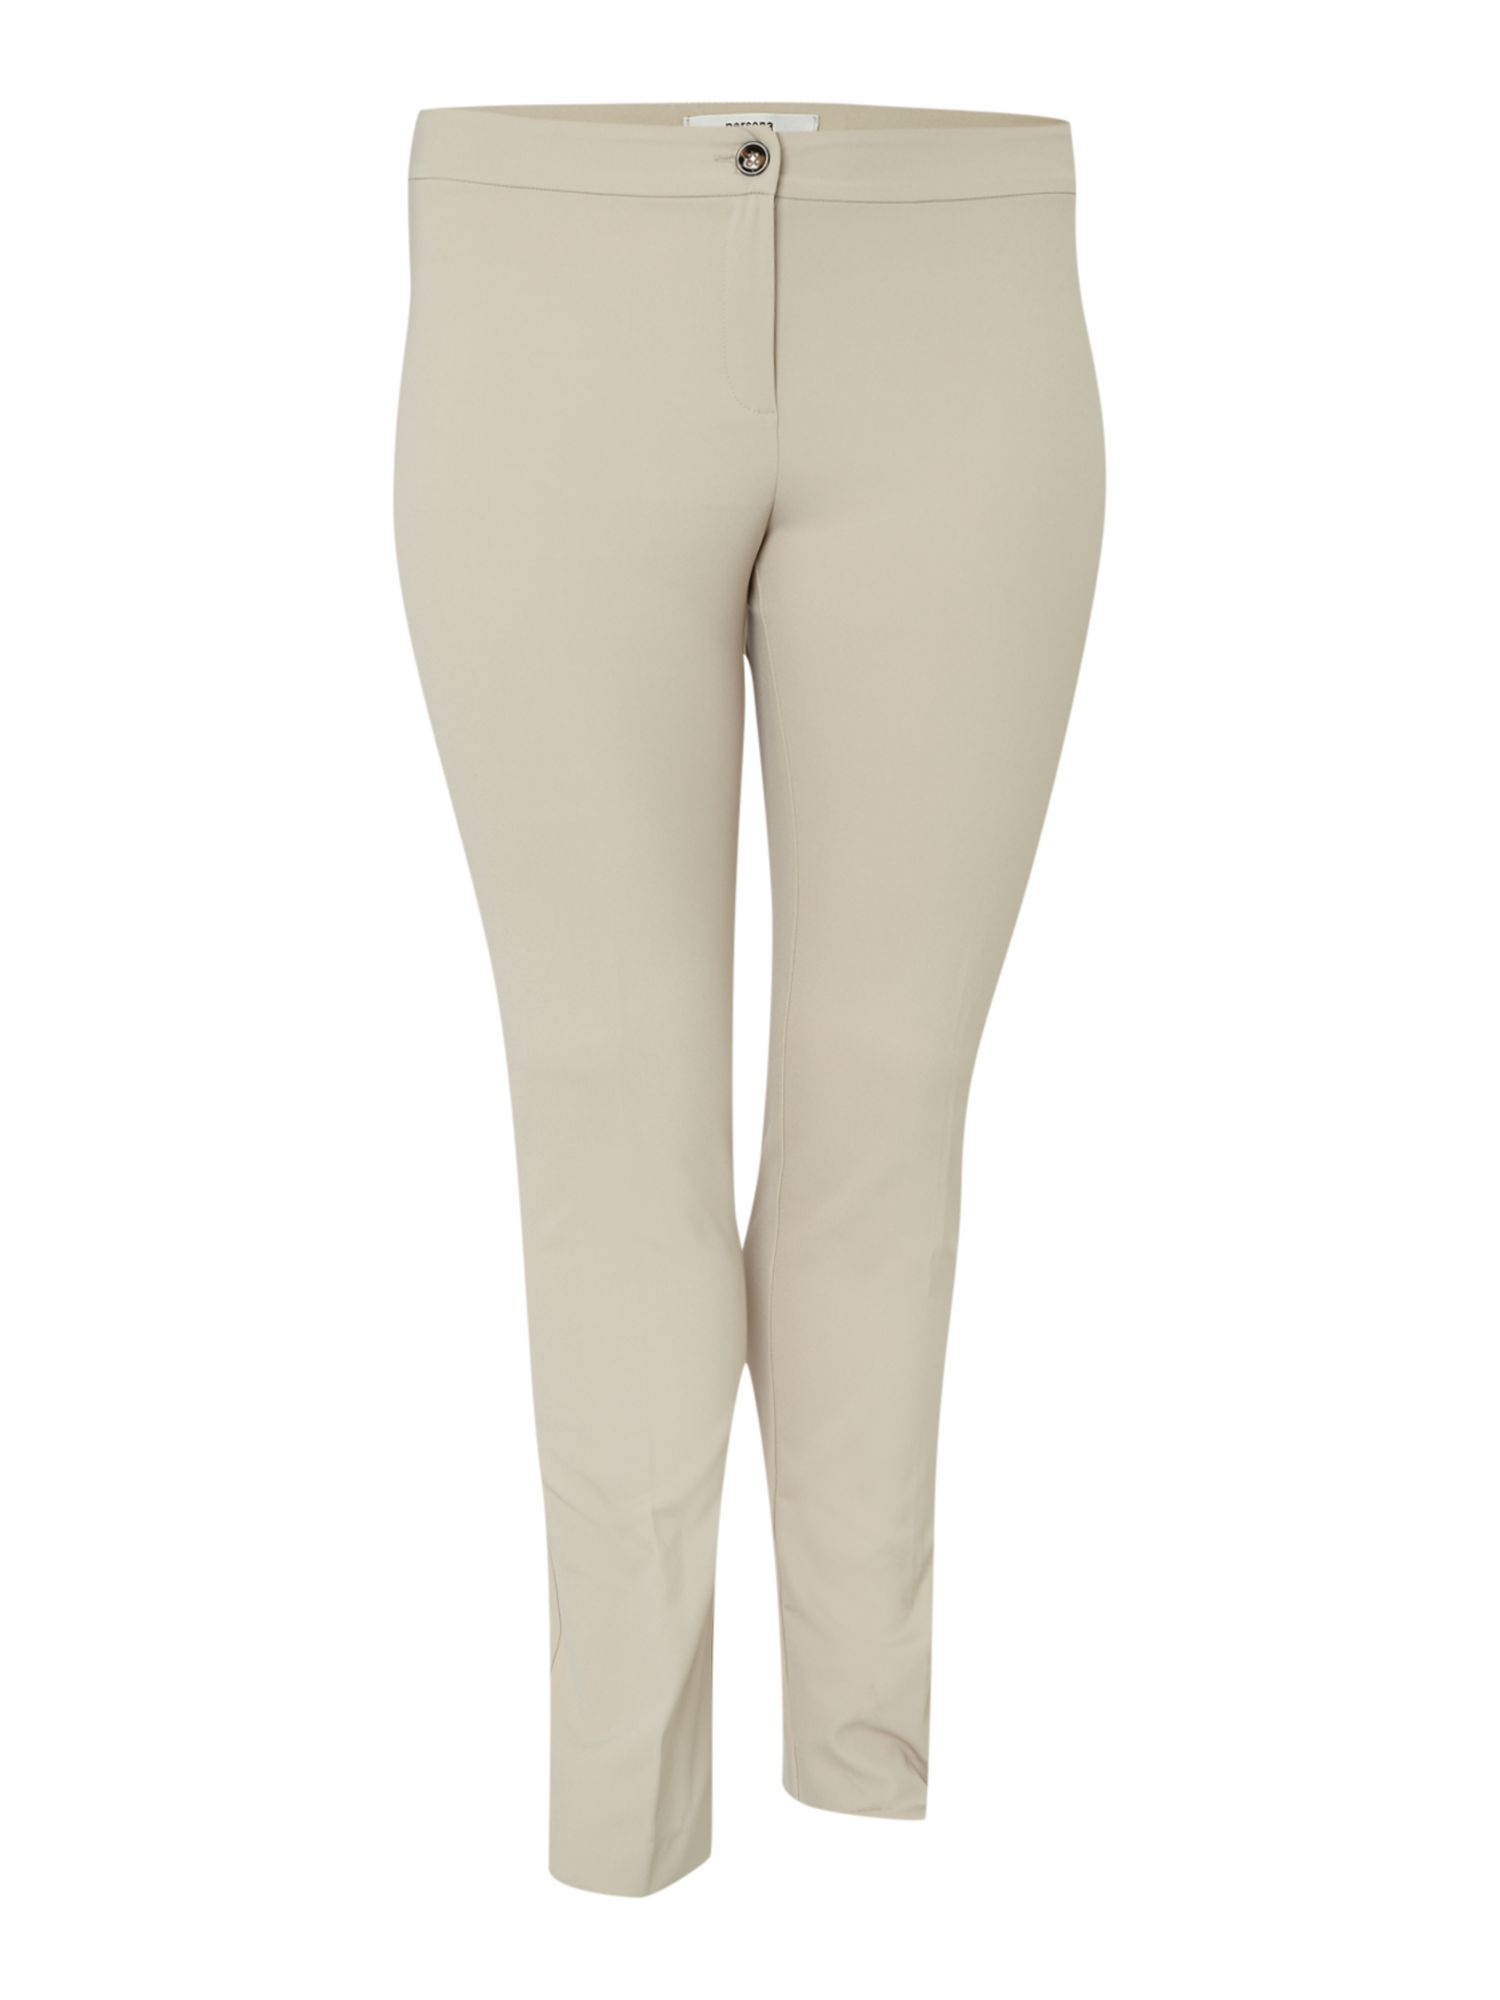 Ruggero straight leg trouser